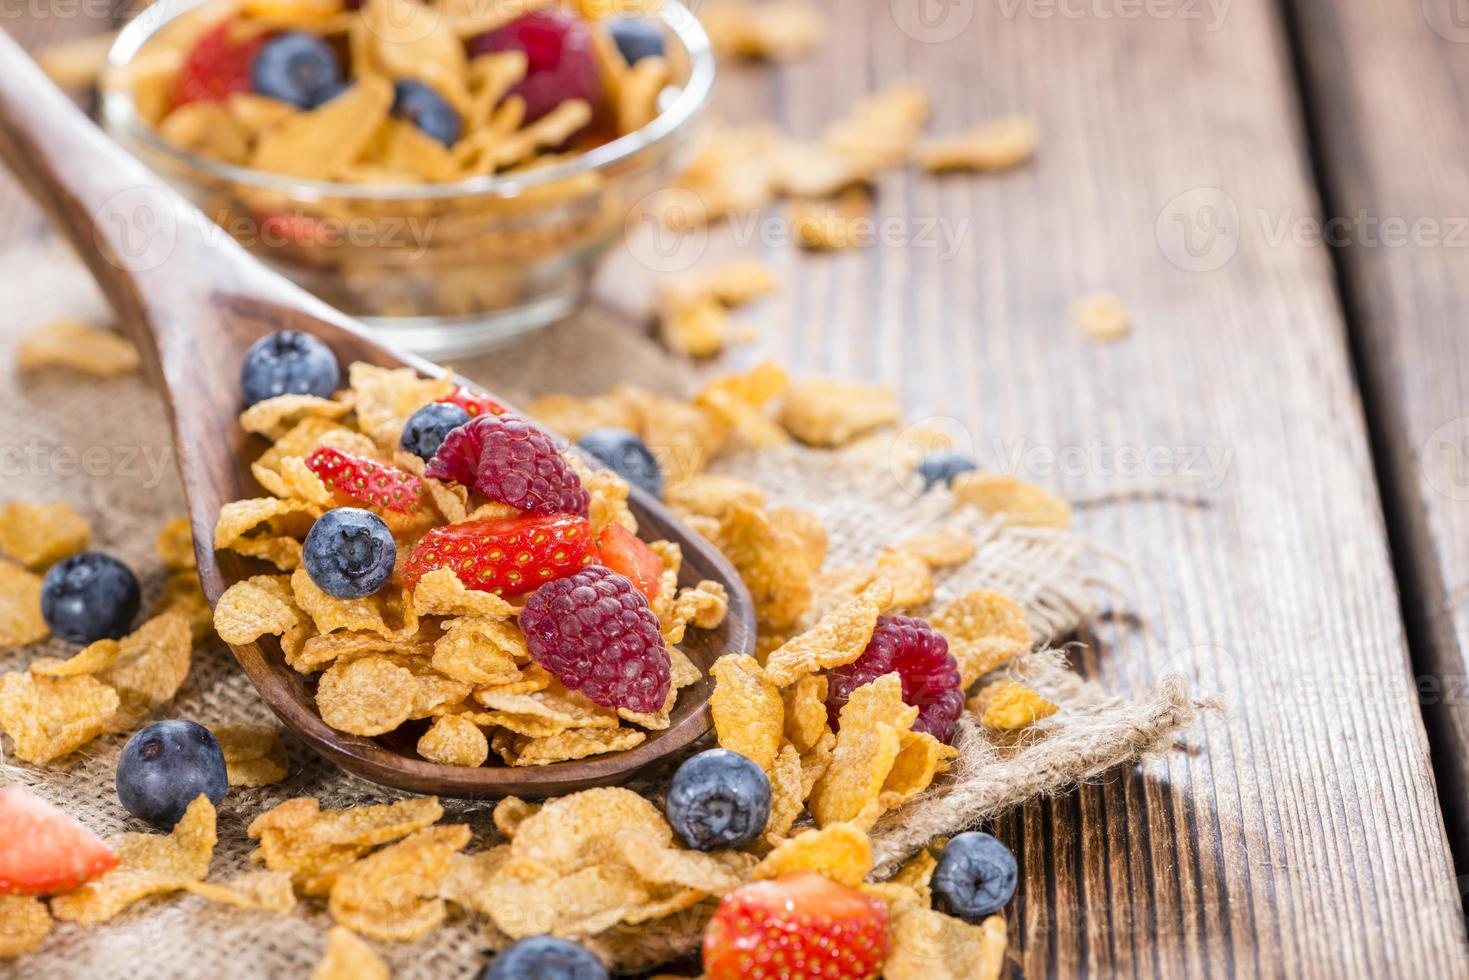 Portion of Cornflakes with Berries photo